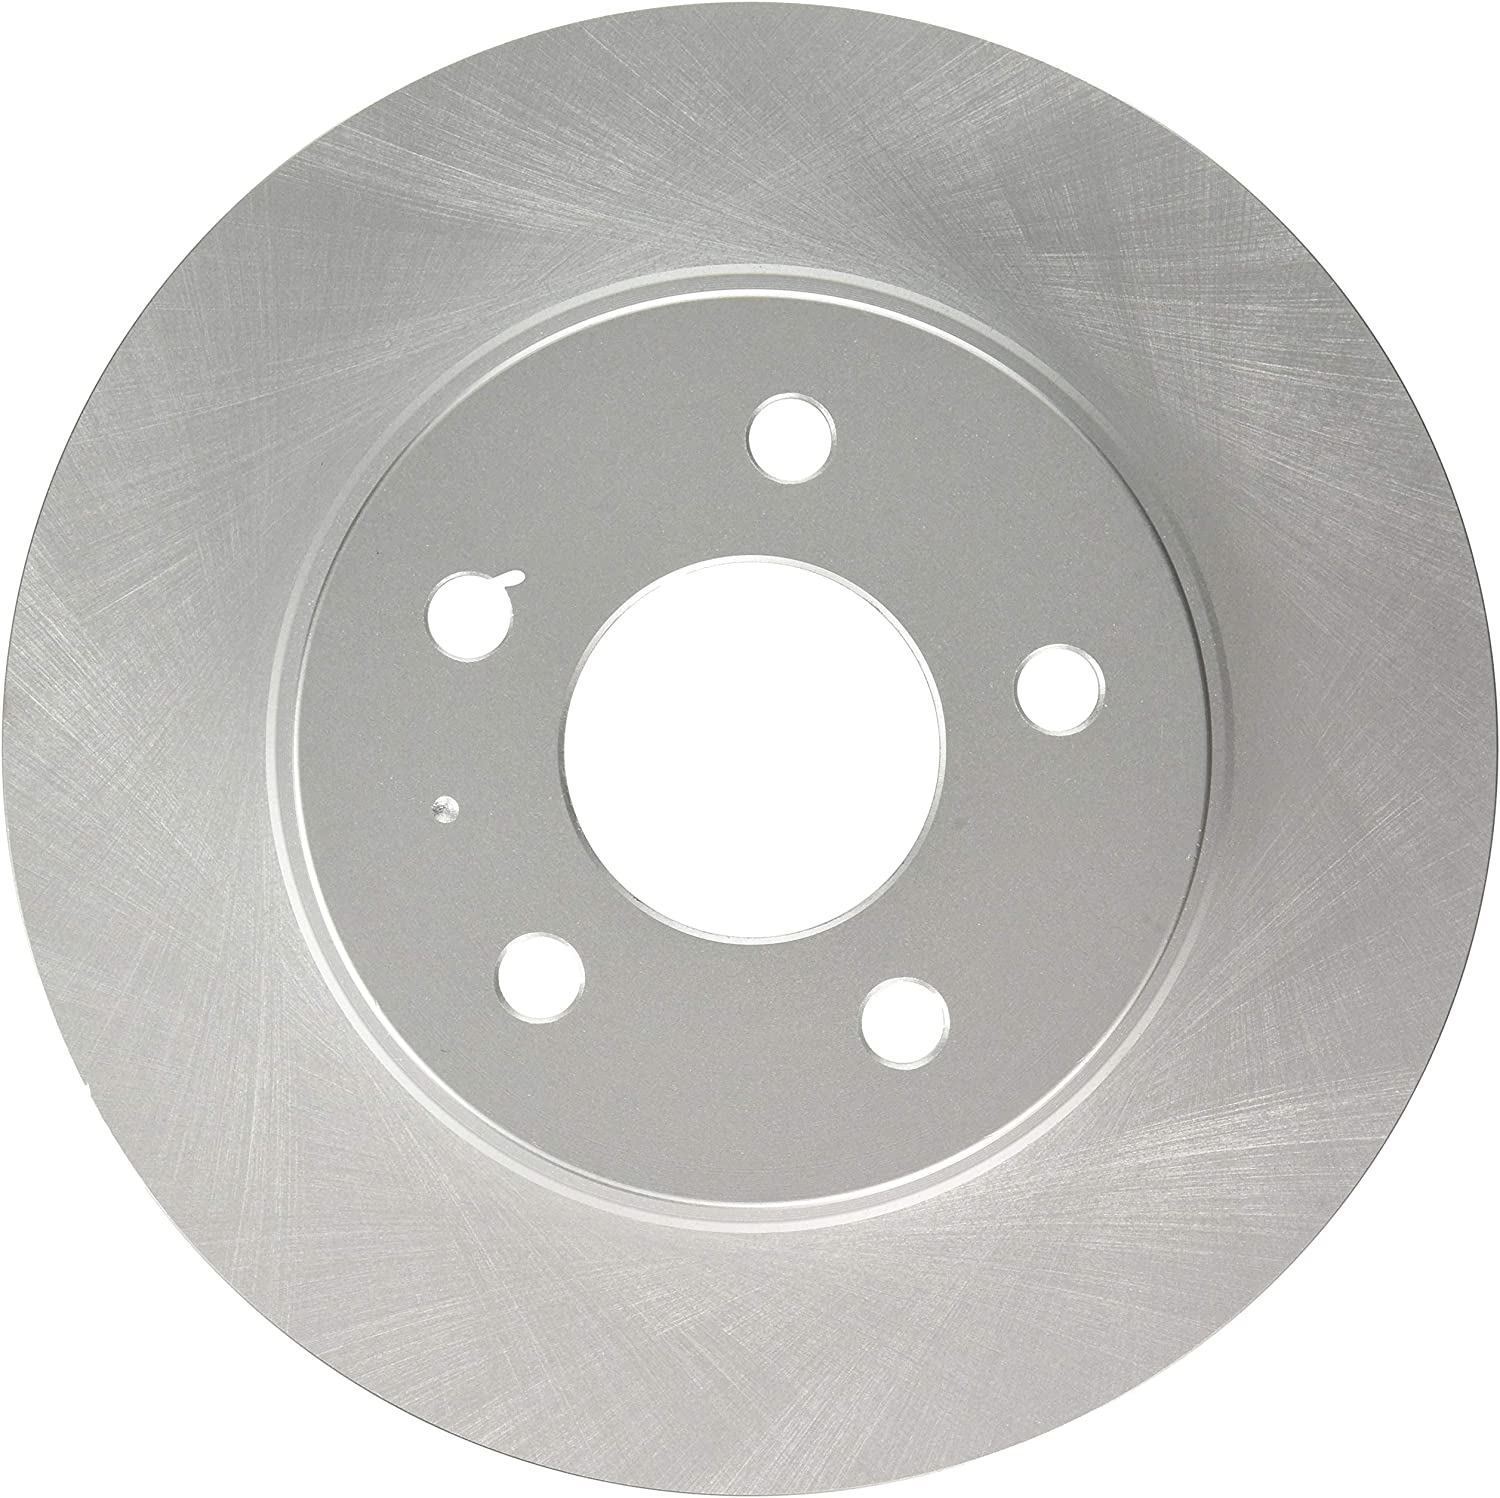 Raybestos 580243FZN Rust Prevention Charlotte Mall Technology Rotor Ranking TOP6 Brak Coated